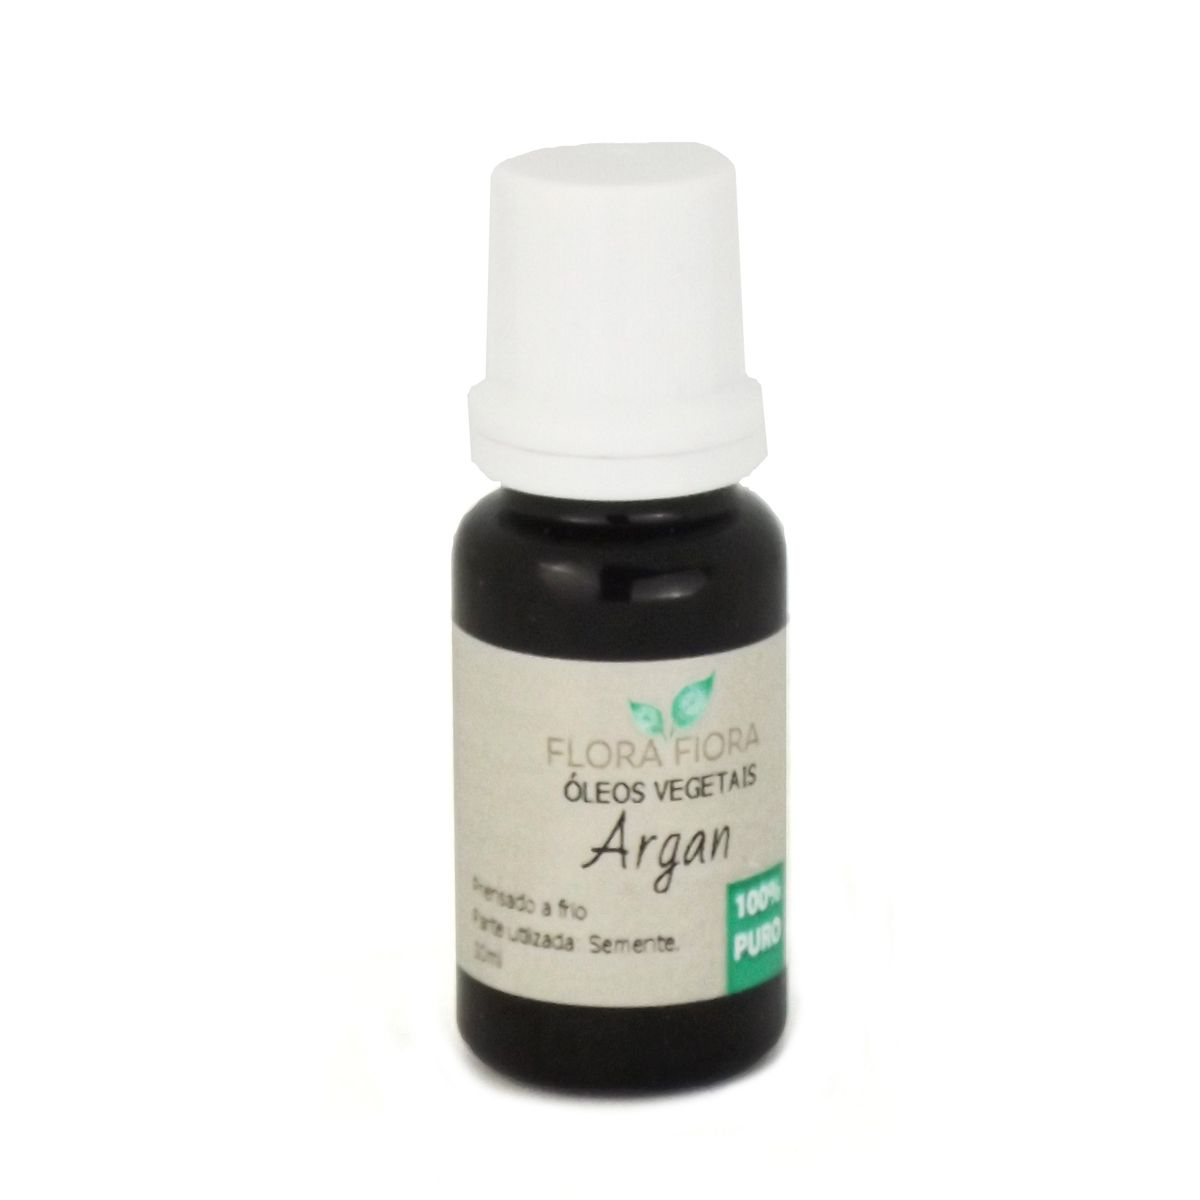 Óleo Vegetal 100% puro de Argan 10ml